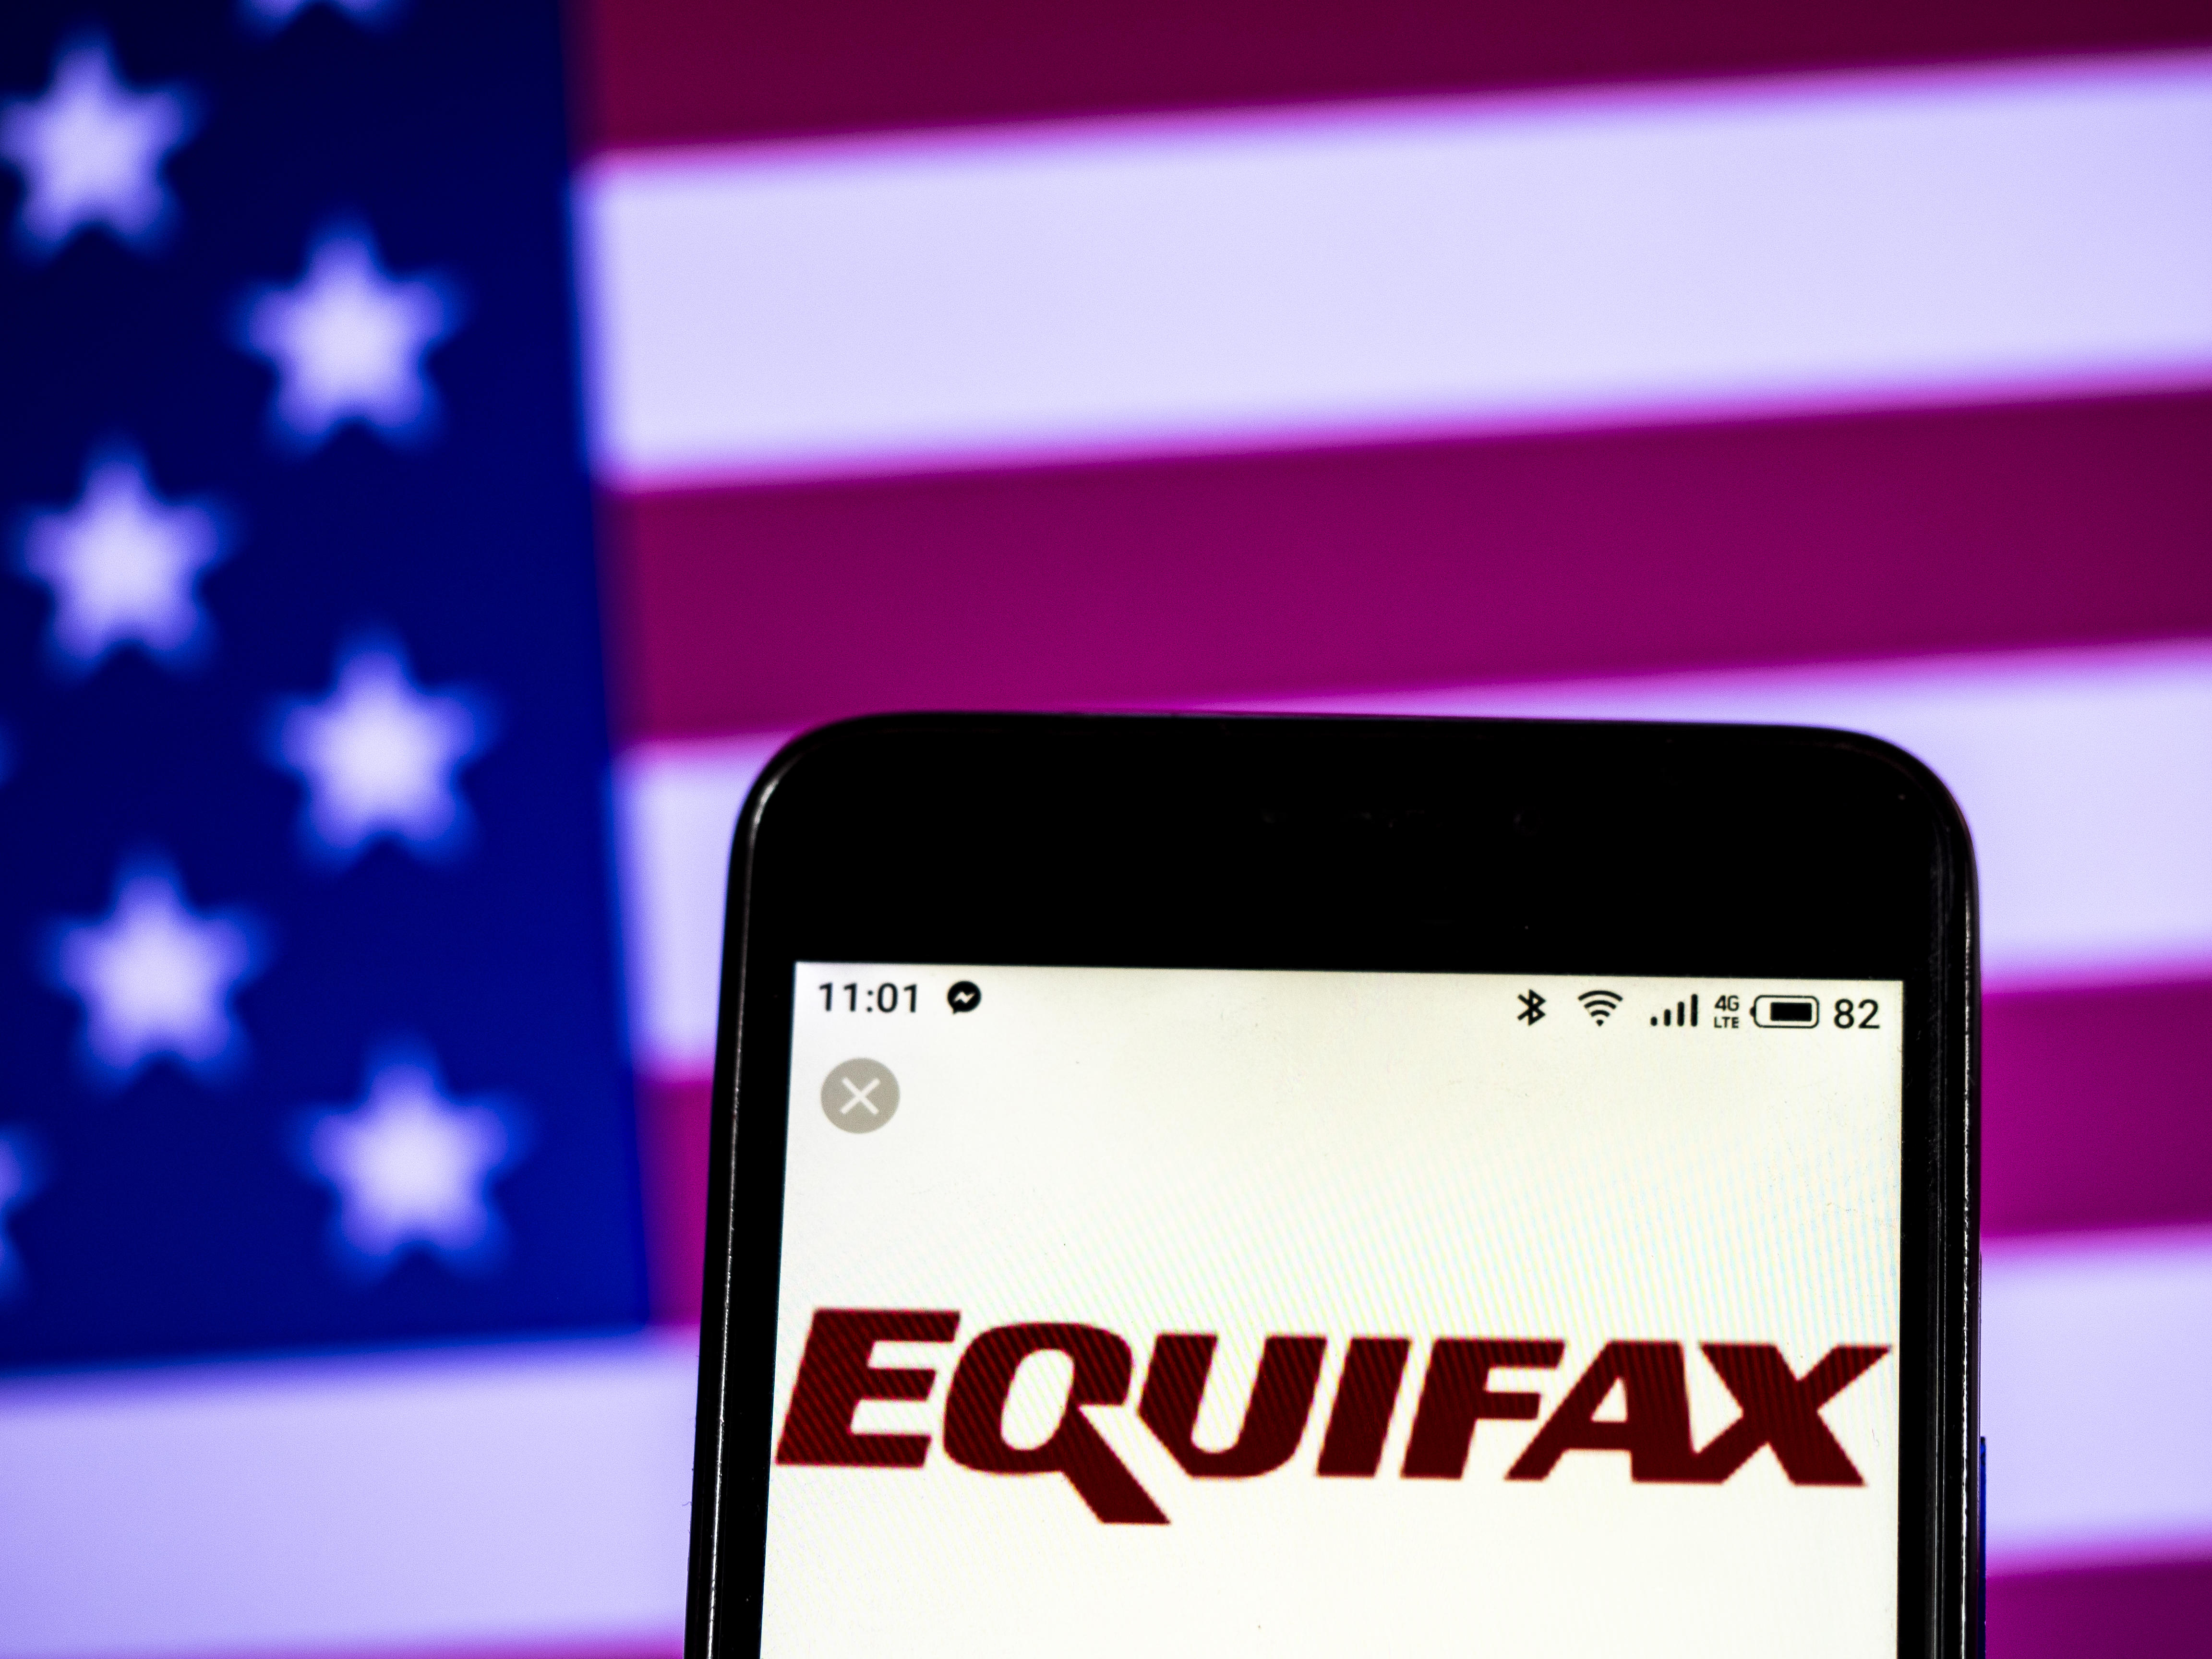 <p>The Equifax breach exposed the personal data of 147 million consumers, including driver's license information, social security numbers and birthdates.&nbsp;</p>